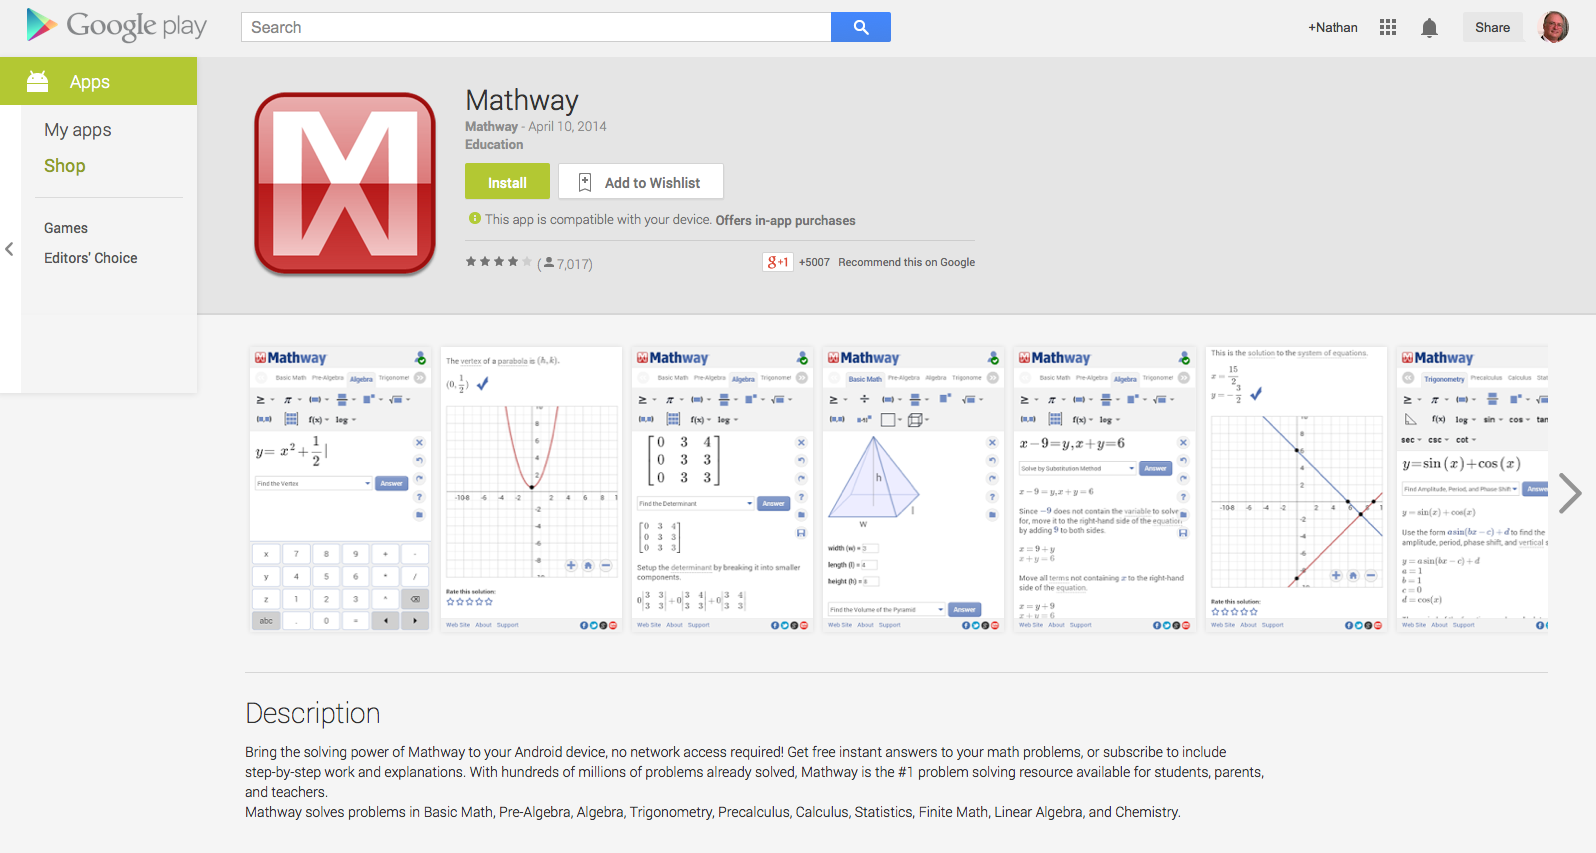 android app mathway teacherlink blog  mathway solves problems in basic math pre algebra algebra trigonometry precalculus calculus statistics finite math linear algebra and chemistry